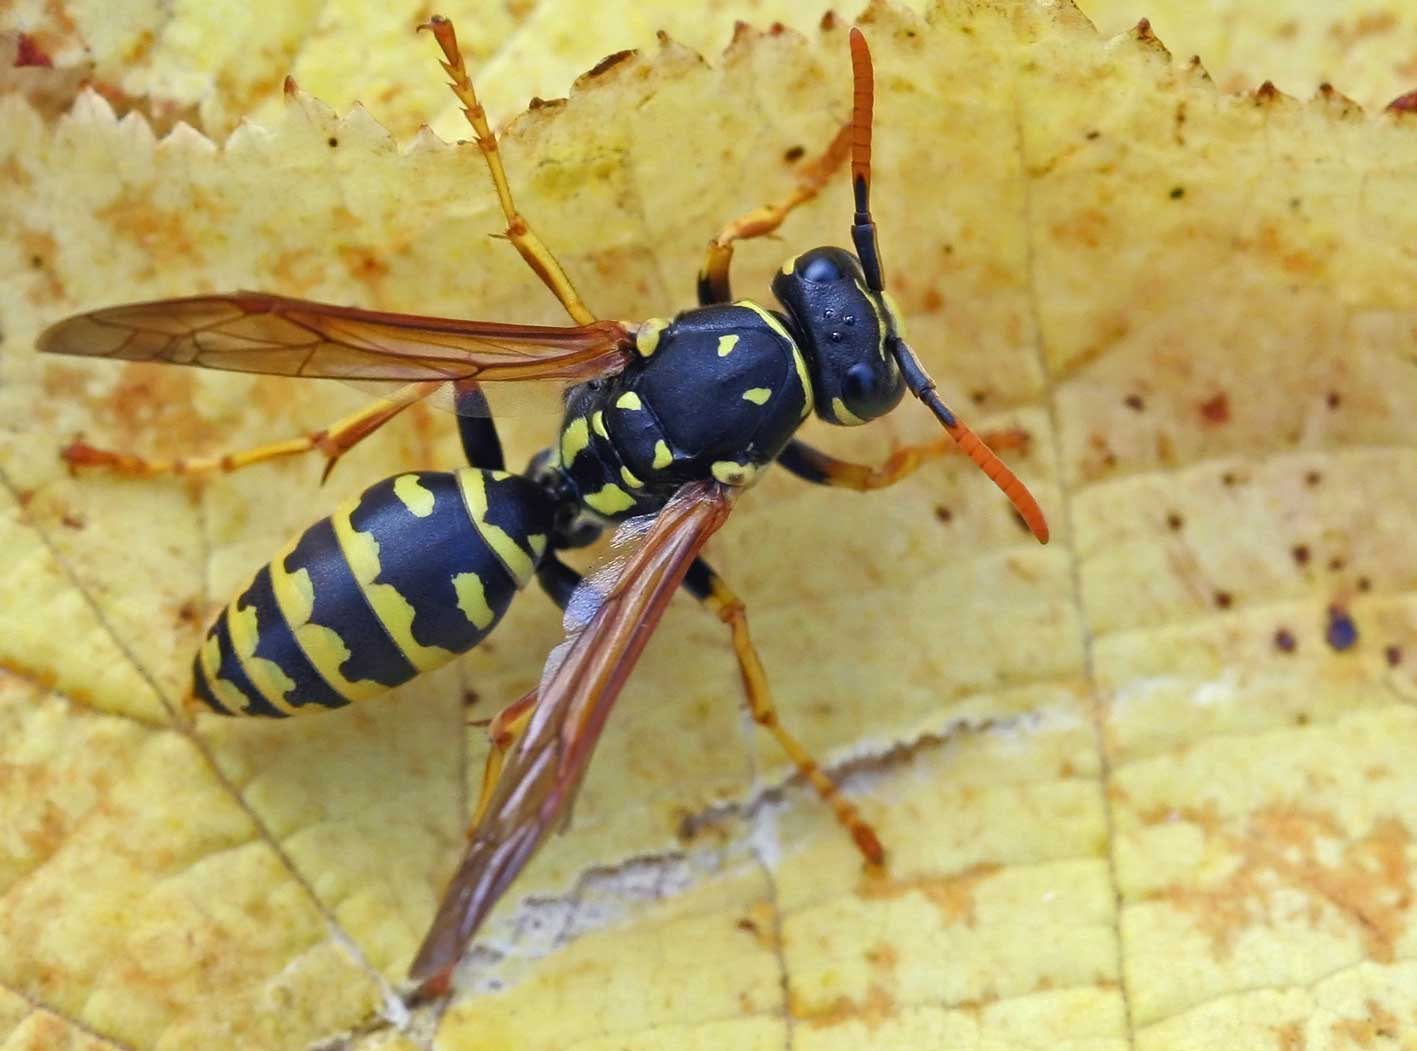 Such As Bees Wasps Prefer Sweet And Primarily Eat Plant Nectar Fruit Honey Also Insects Even Large Caterpillars